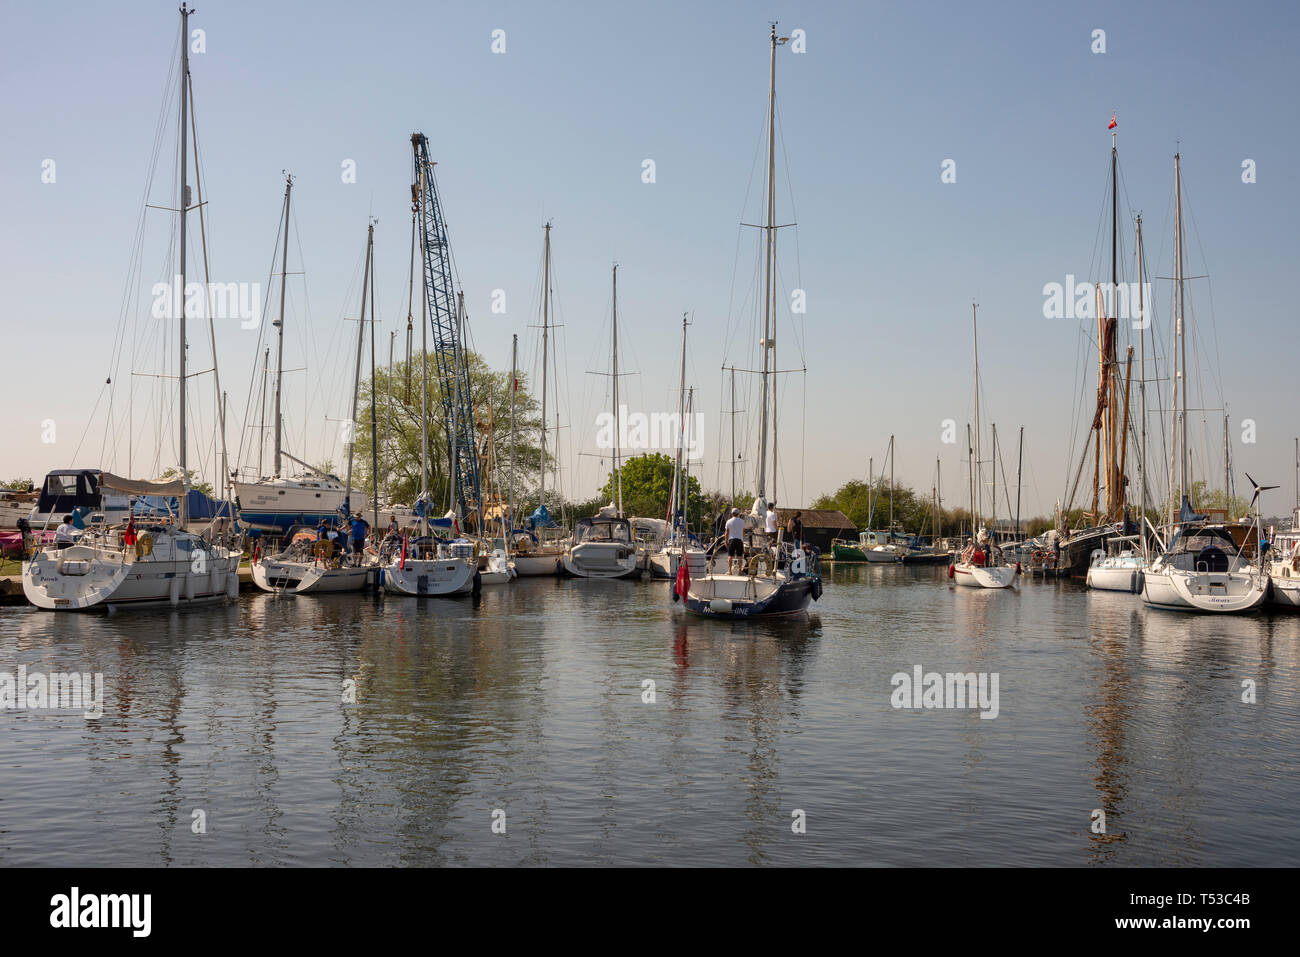 Yacht named Moonshine under power on Chelmer and Blackwater Navigation at Heybridge Basin, Essex, UK on a bright sunny day. Moored boats, yachts - Stock Image